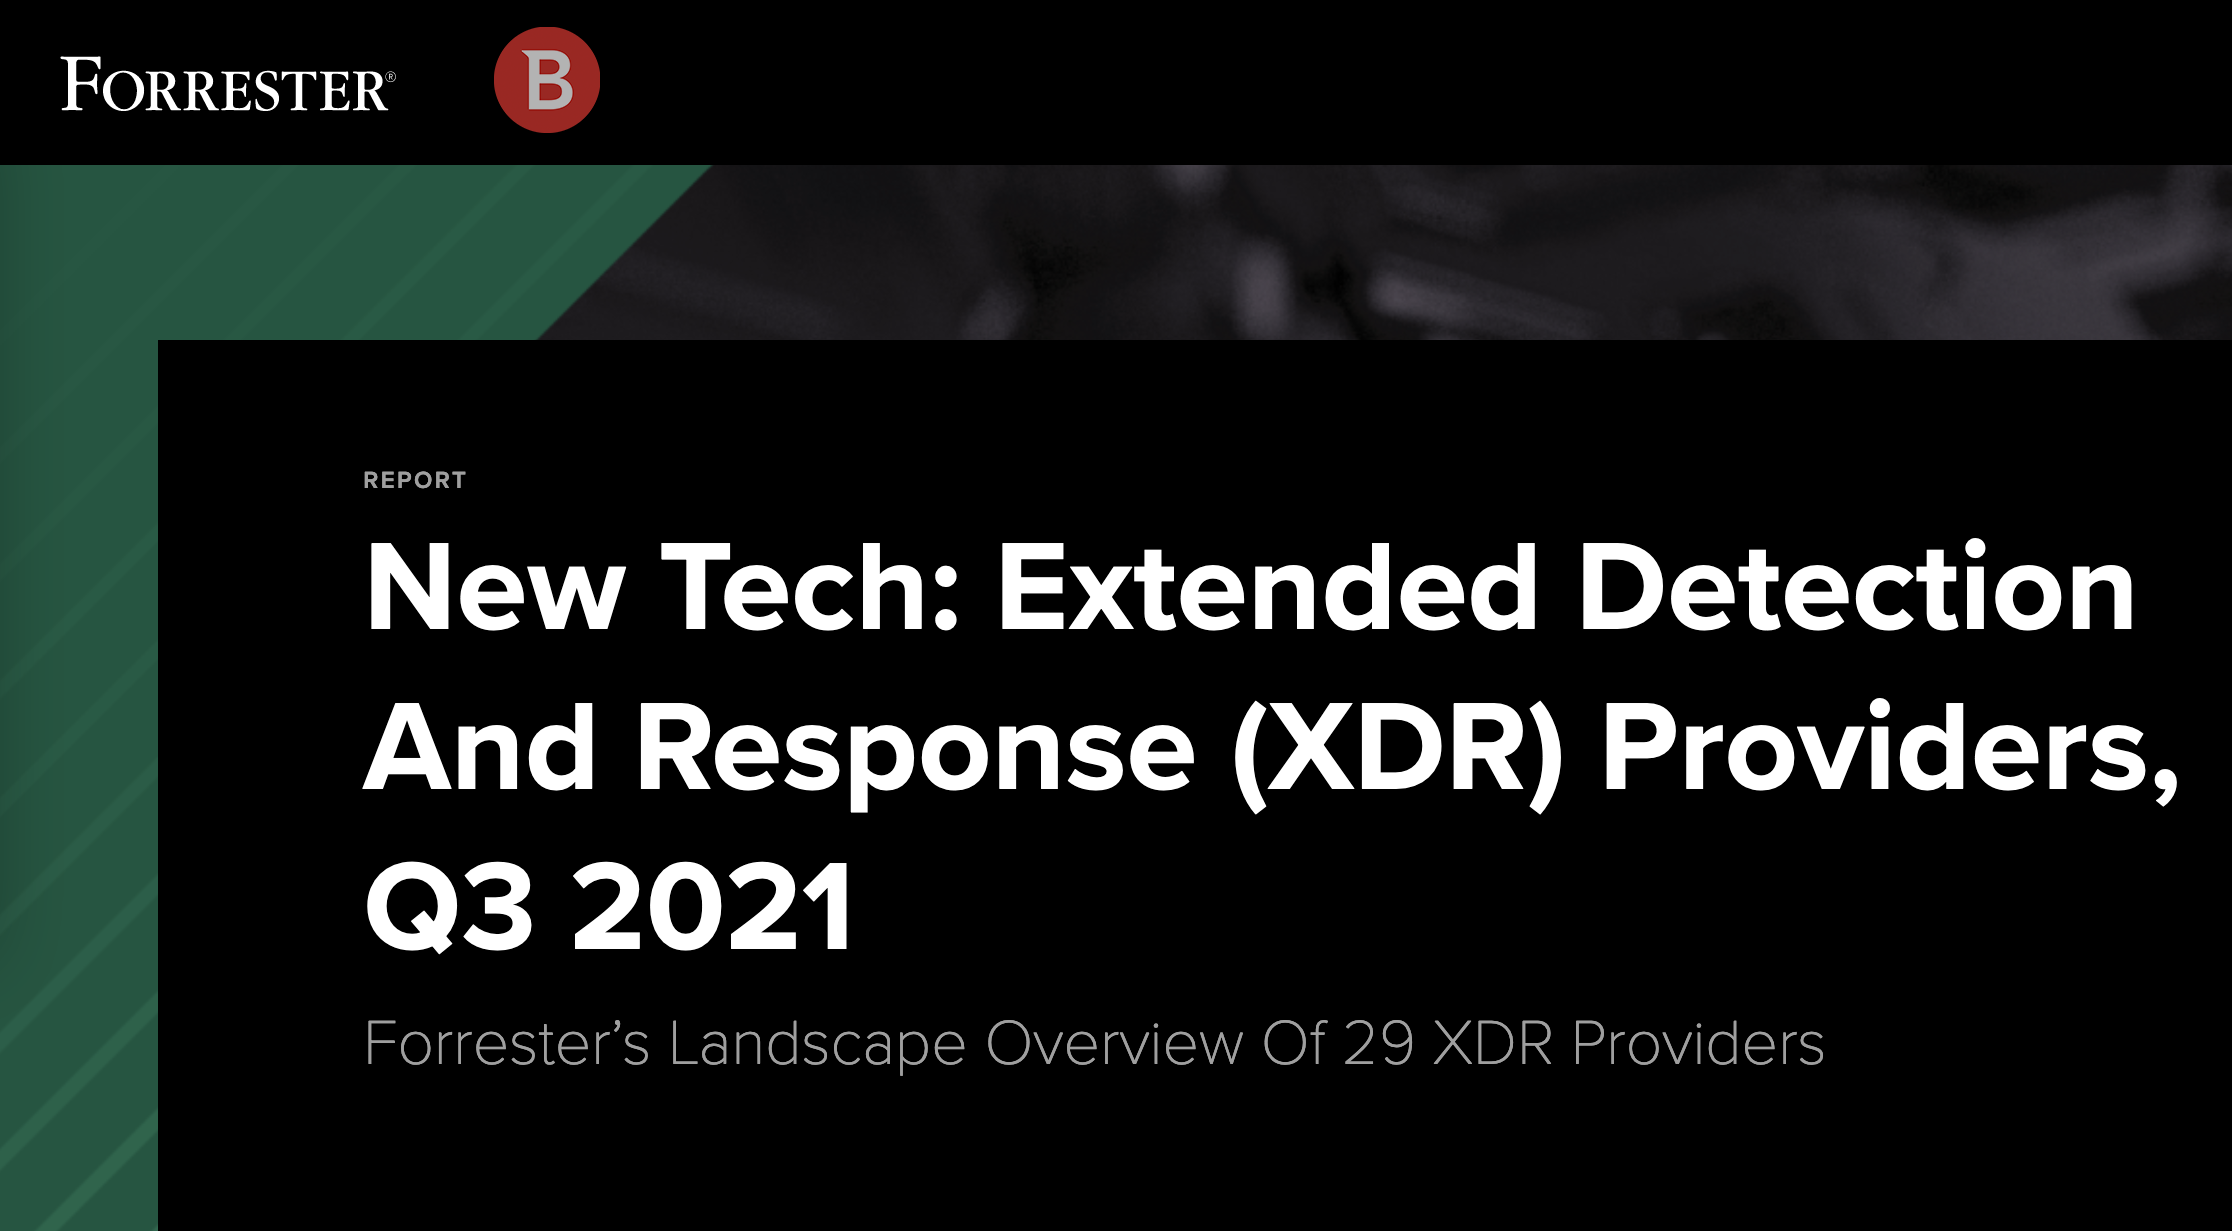 Beyond the XDR Hype – A Look at the Forrester New Tech on Extended Detection and Response